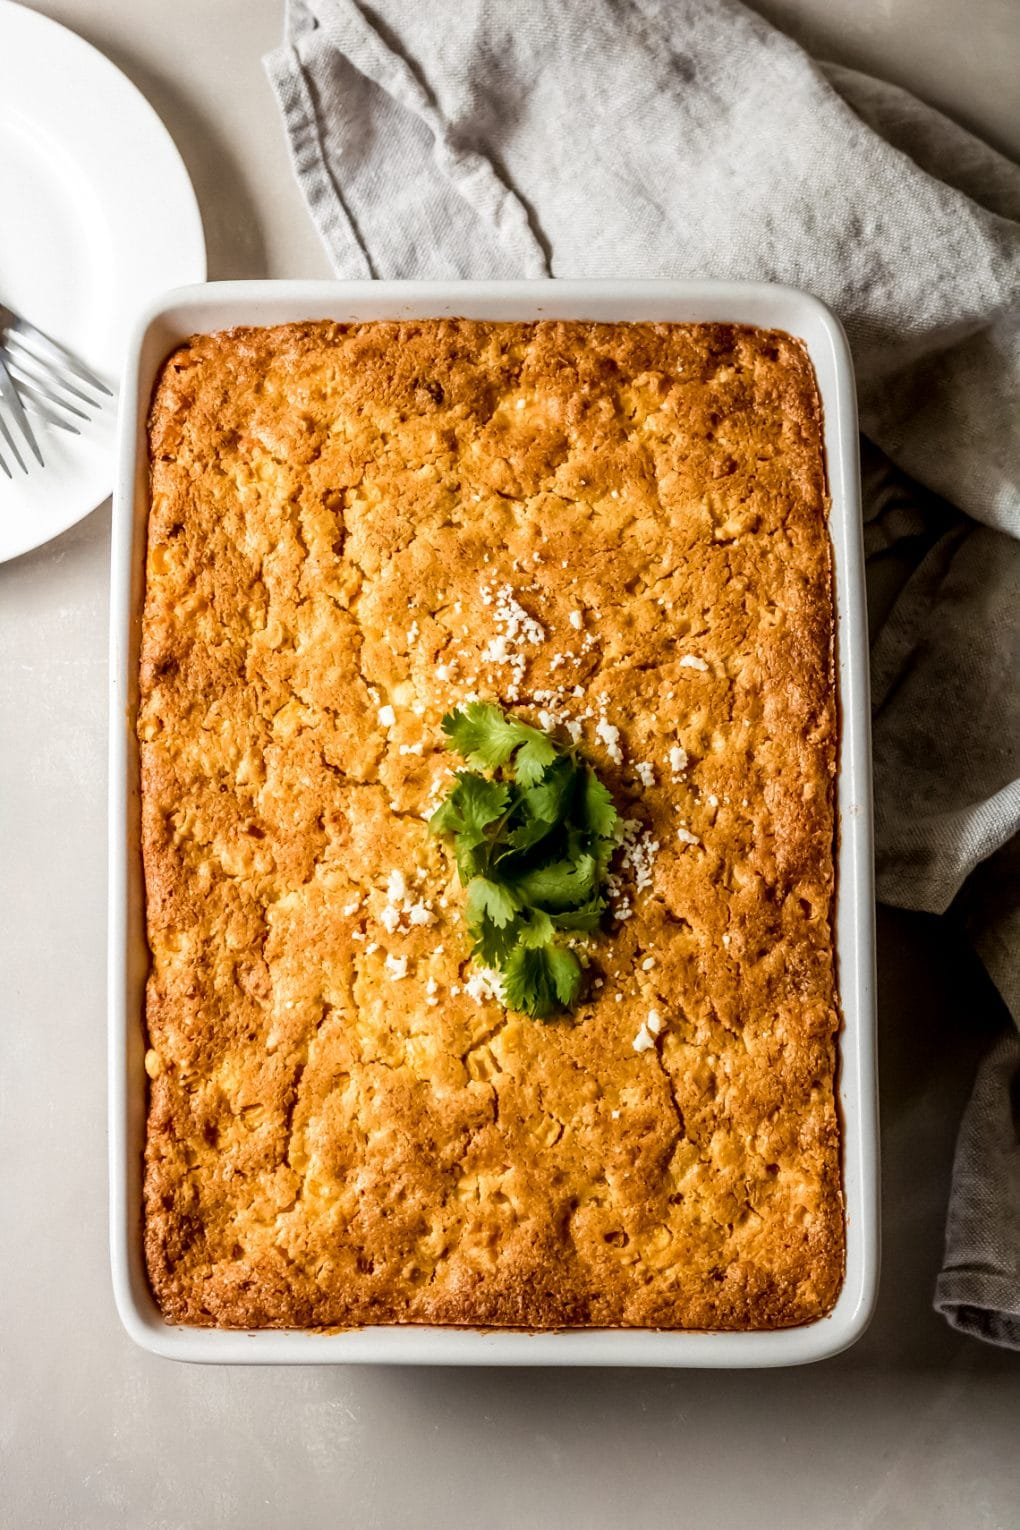 a baked Mexican street corn beef casserole in a white 9x13 baking dish